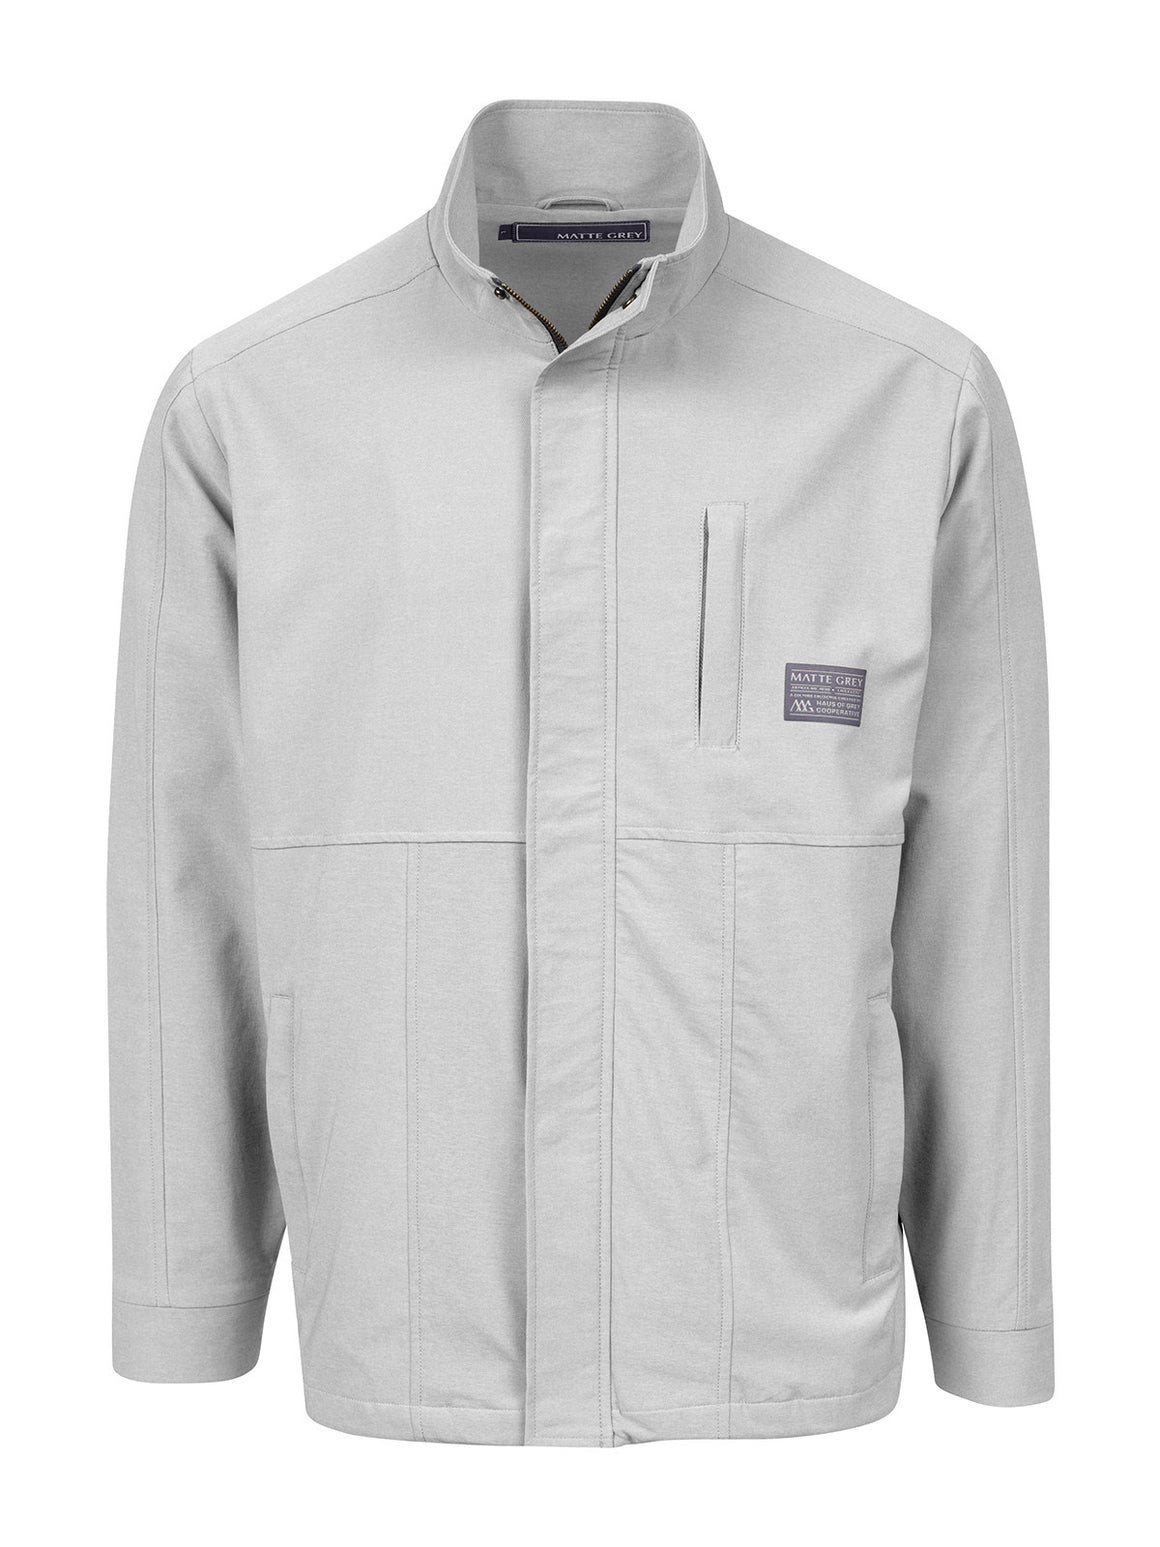 Trekker Badge Jacket - Stone